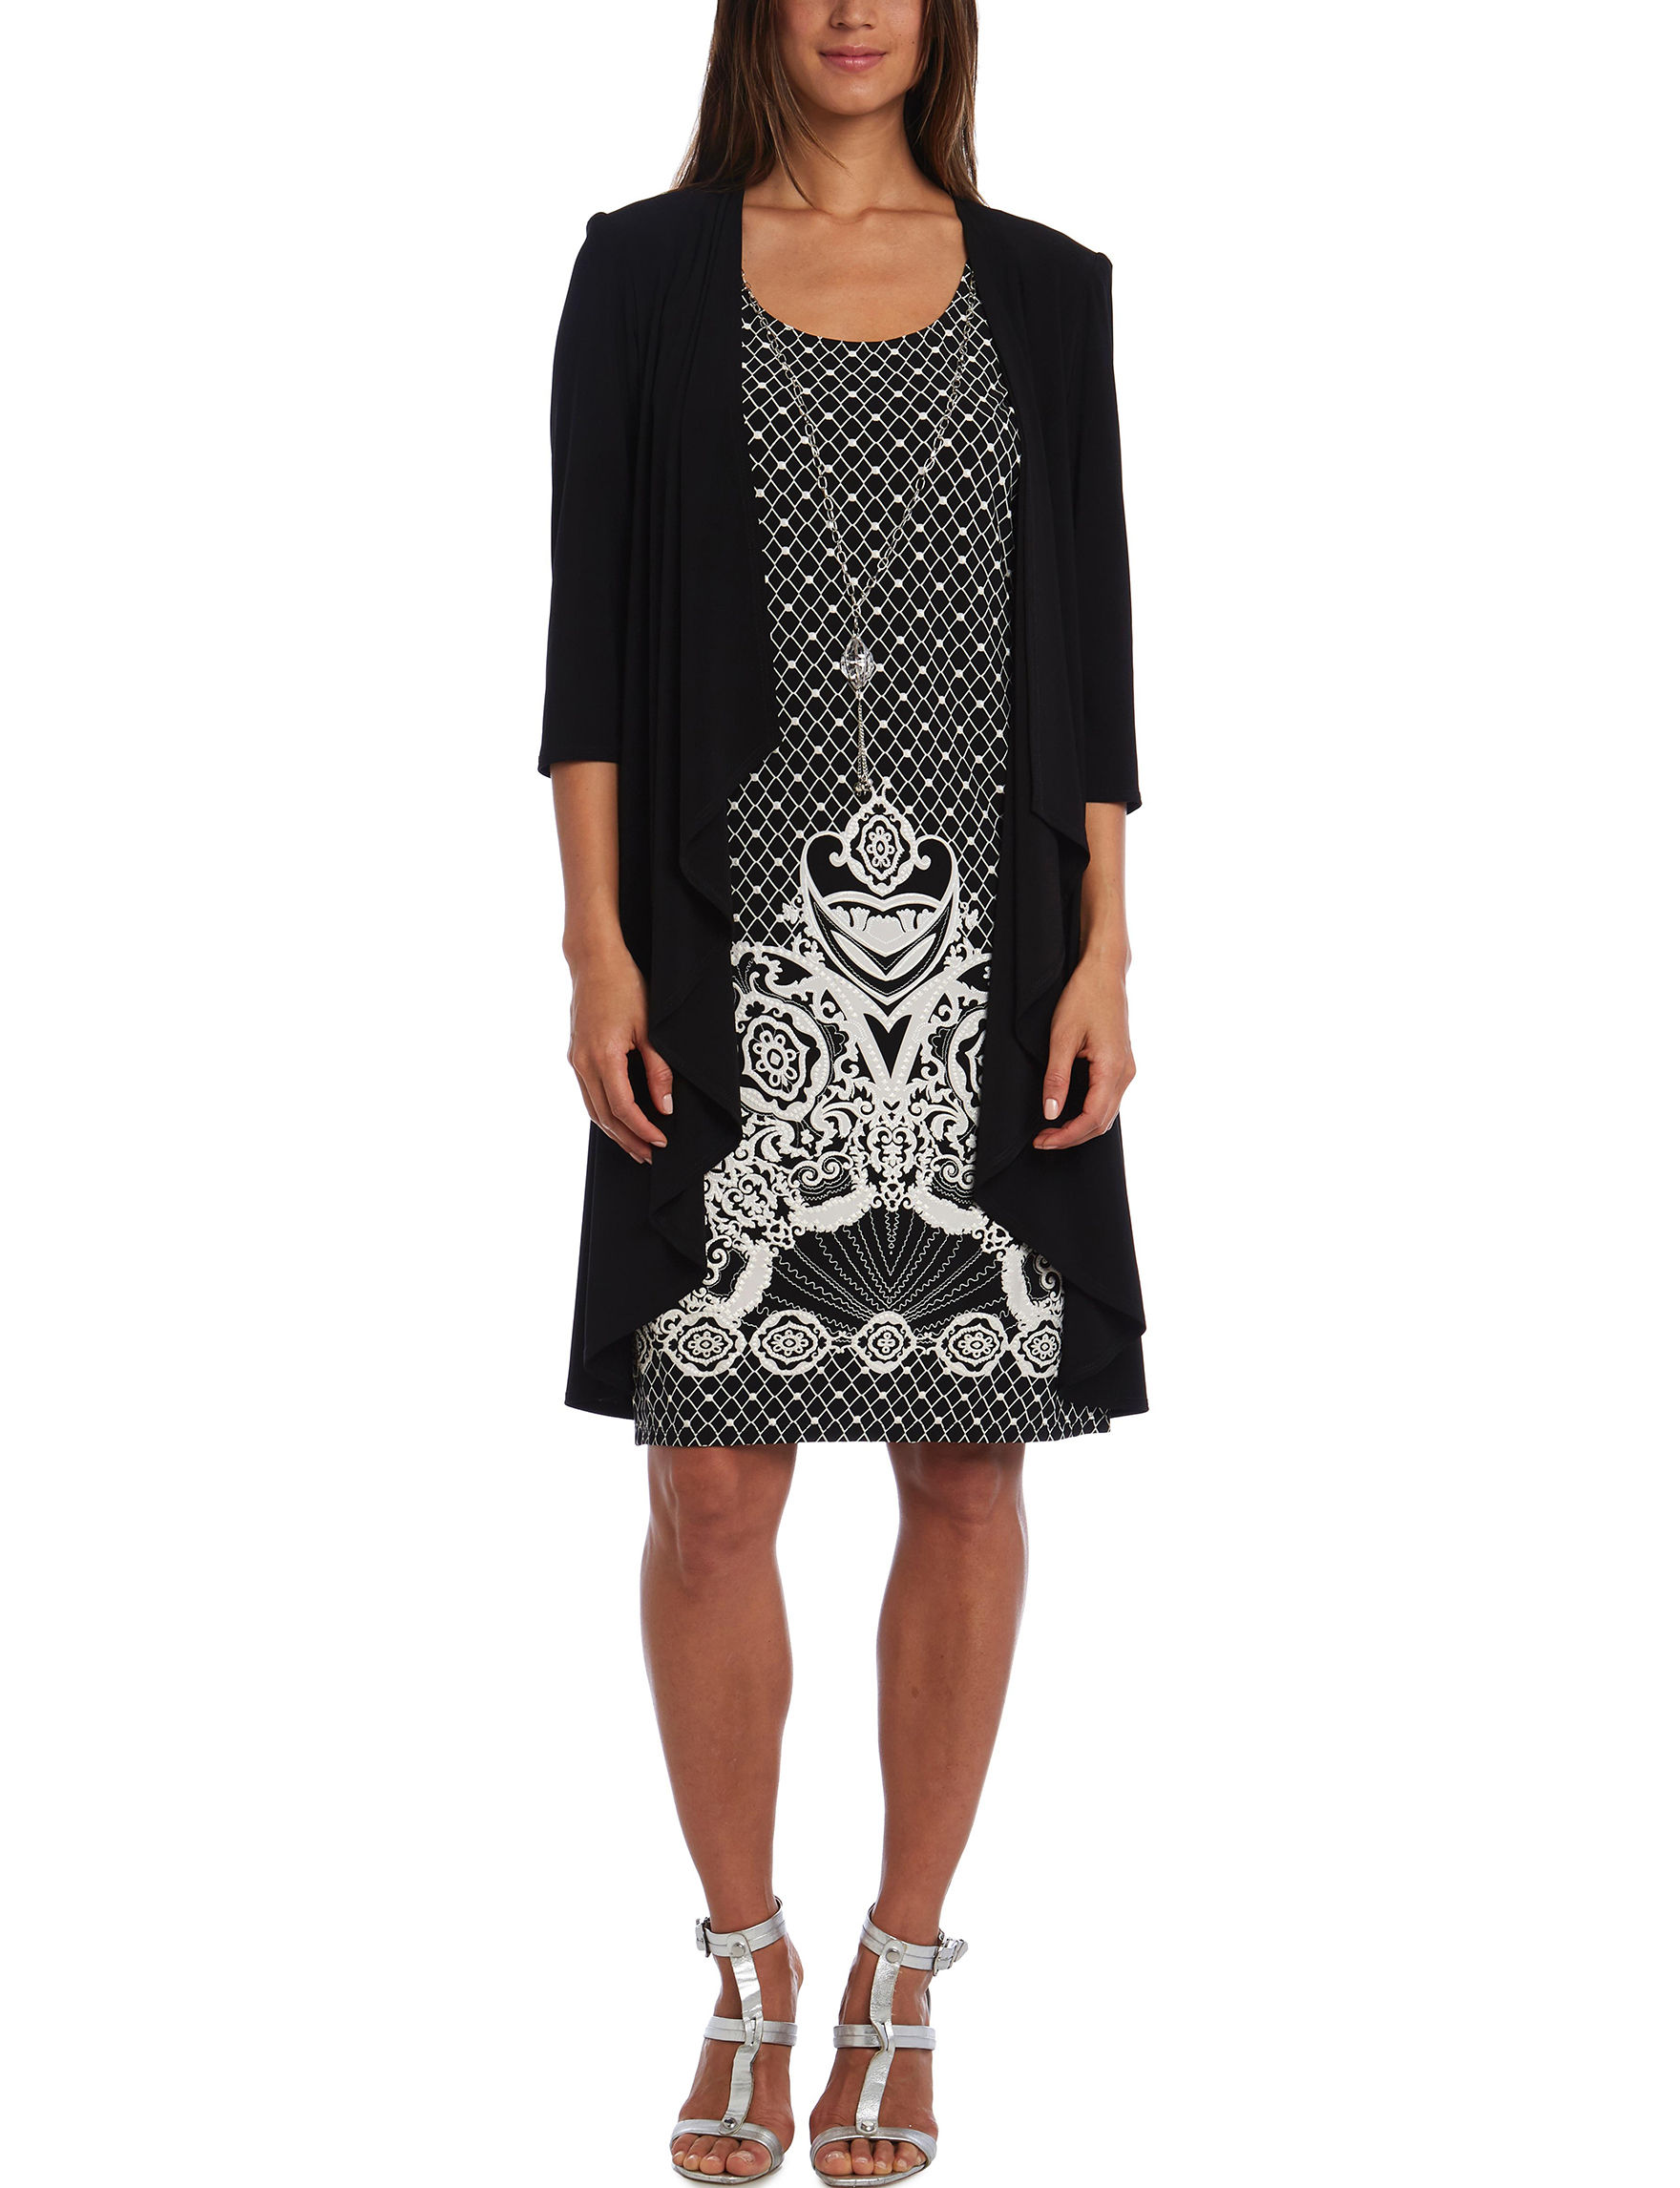 R & M Richards Black / White Everyday & Casual Jacket Dresses Shift Dresses